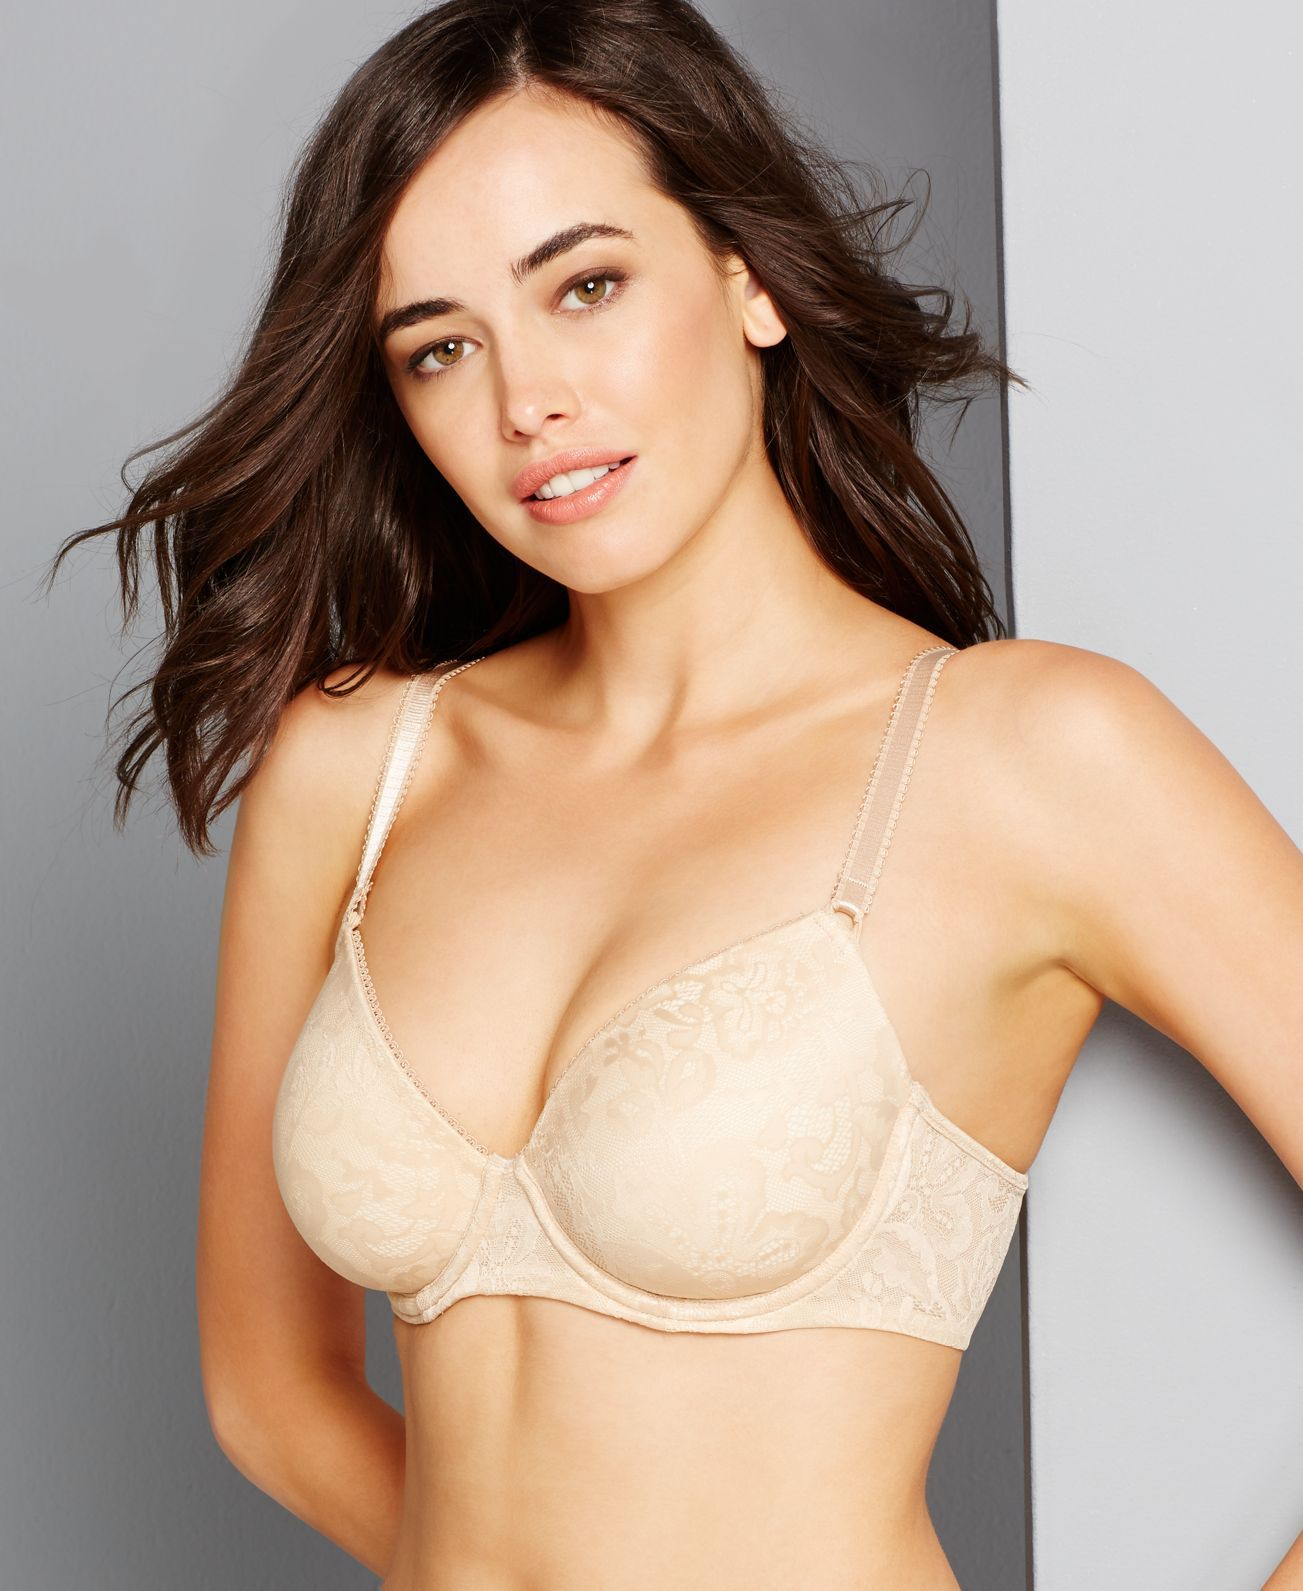 Bali One Smooth U Lace Underwire Bra 3516 | Products | Pinterest ...